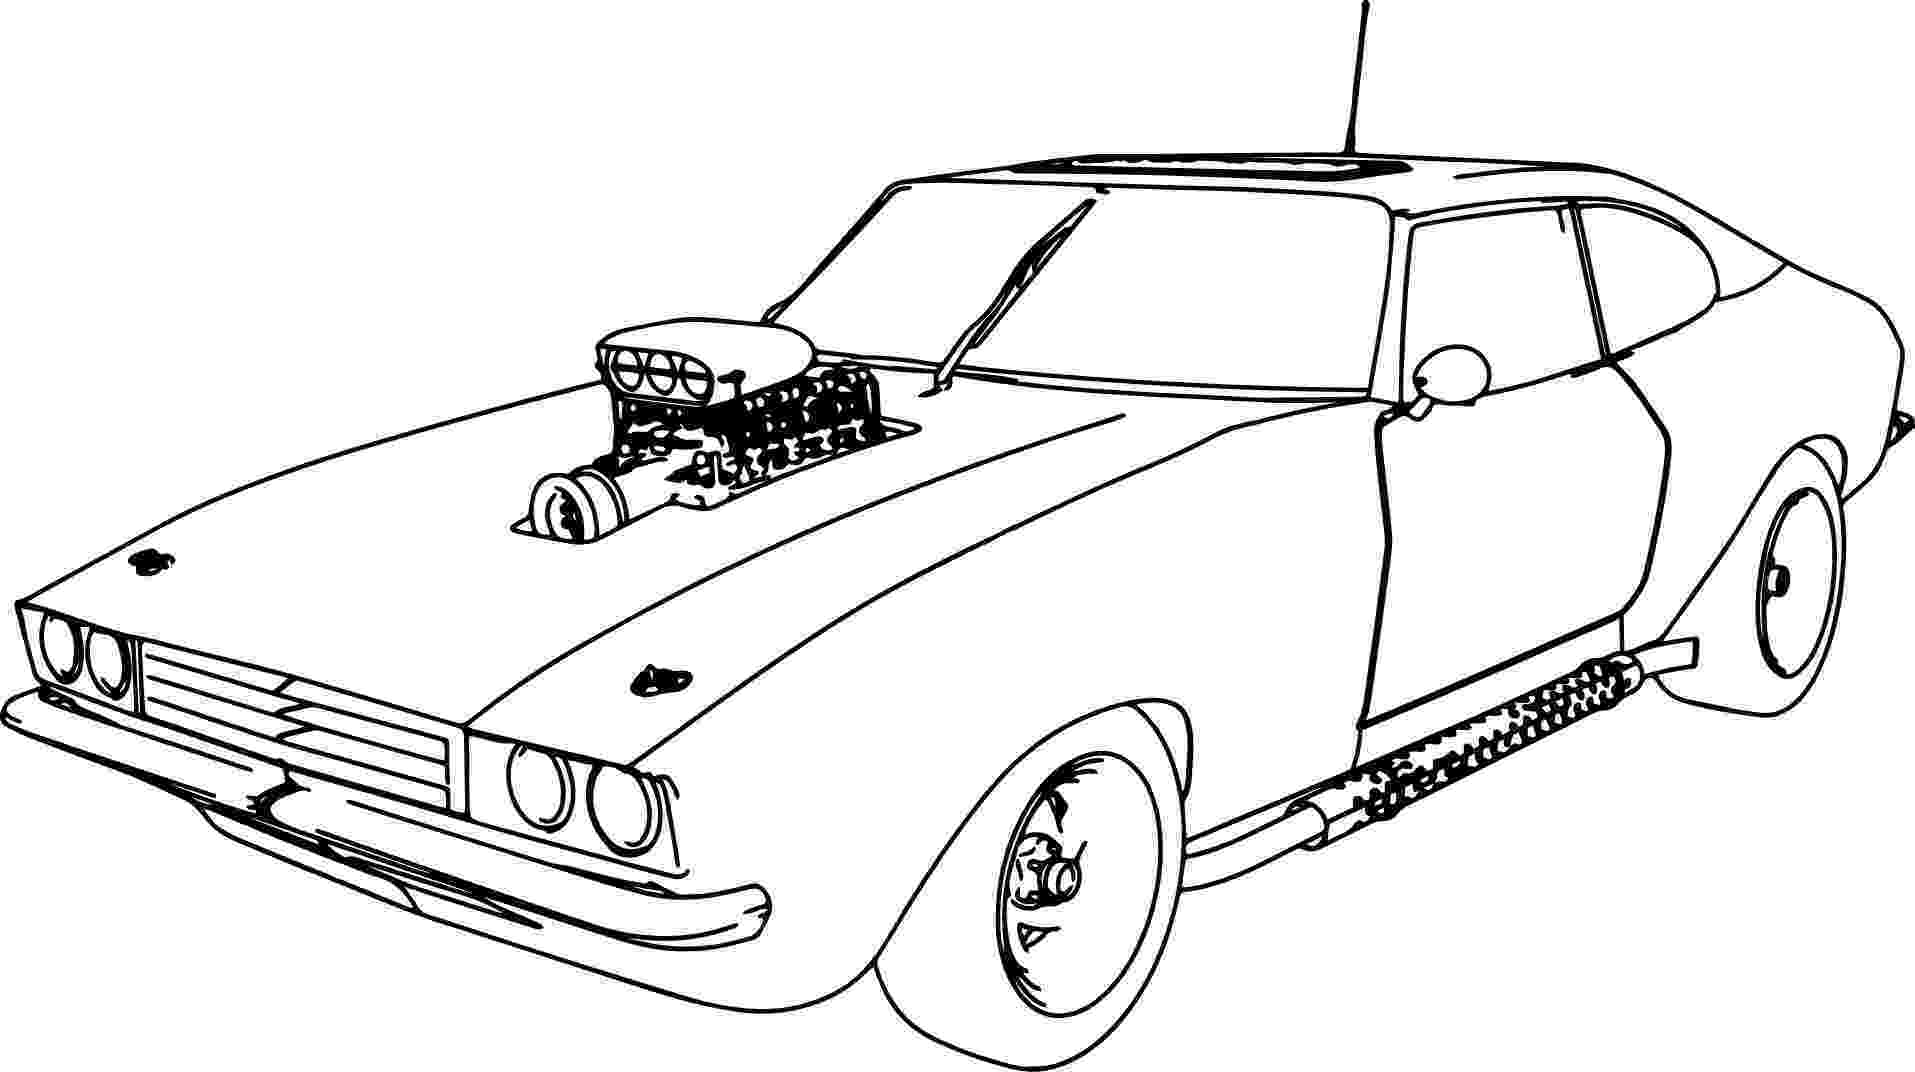 colouring pages for adults cars car coloring pages for adults at getcoloringscom free adults colouring for cars pages